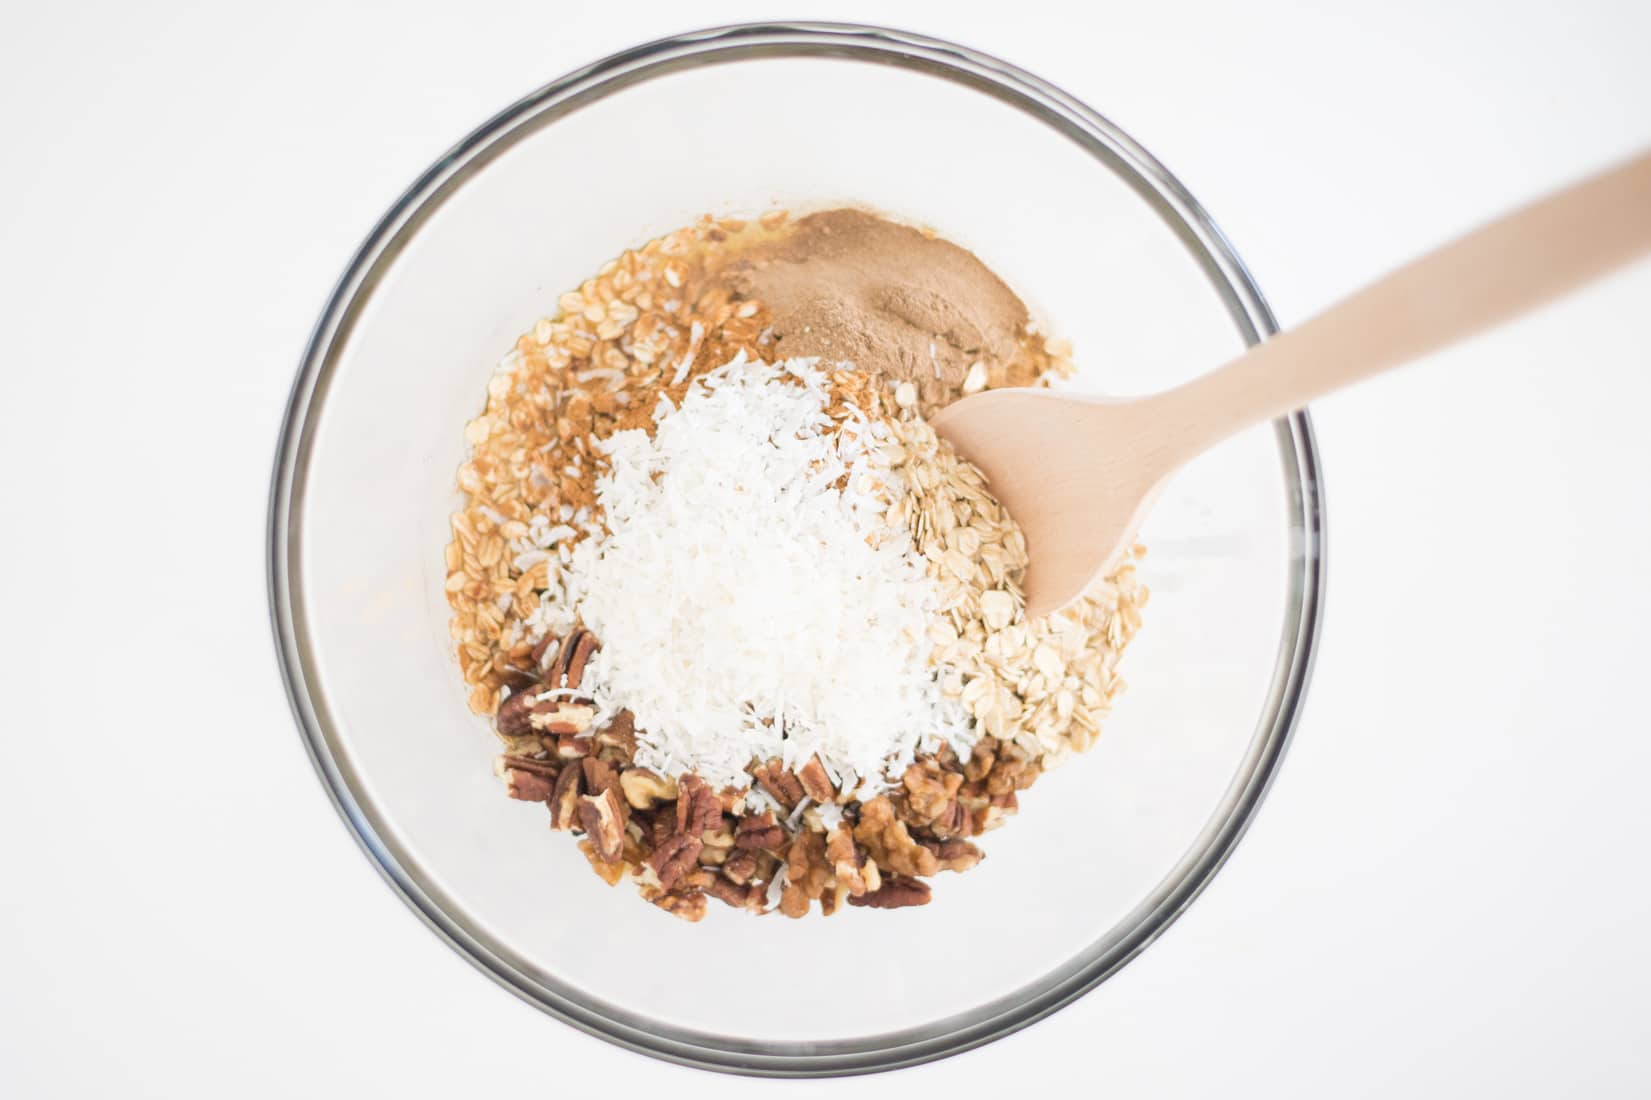 glass bowl full of oats, nuts, coconut oil, sugar, and chai spice with wooden spoon